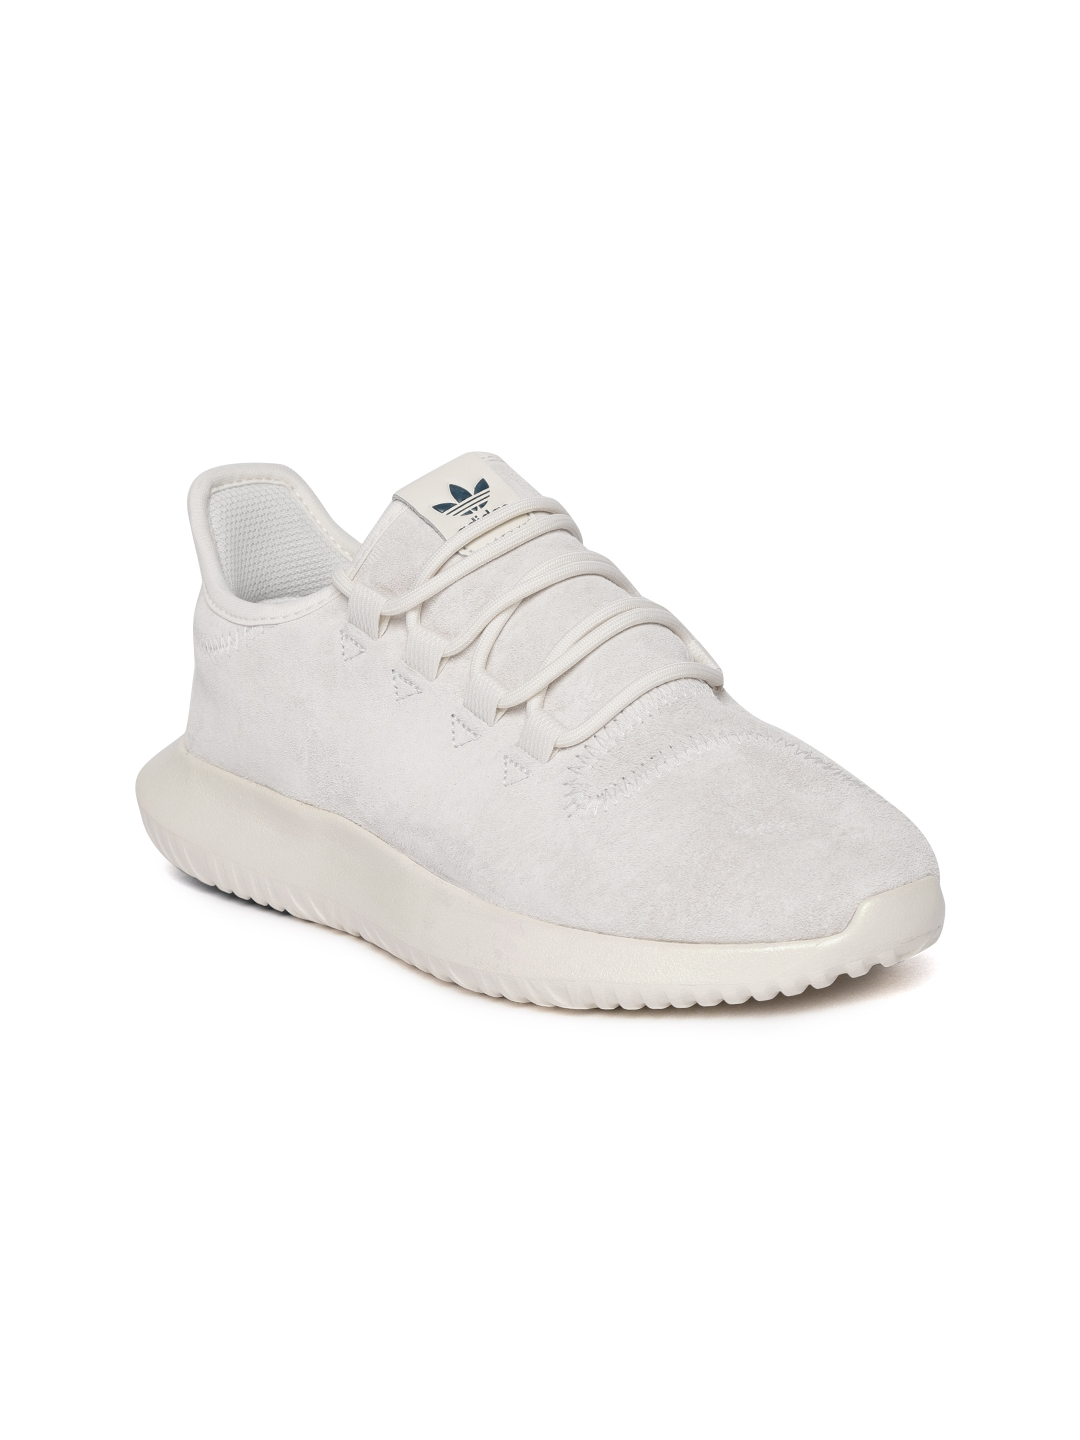 best website e0598 aa21c Adidas Originals Women Off-White Tubular Shadow Suede Sneakers